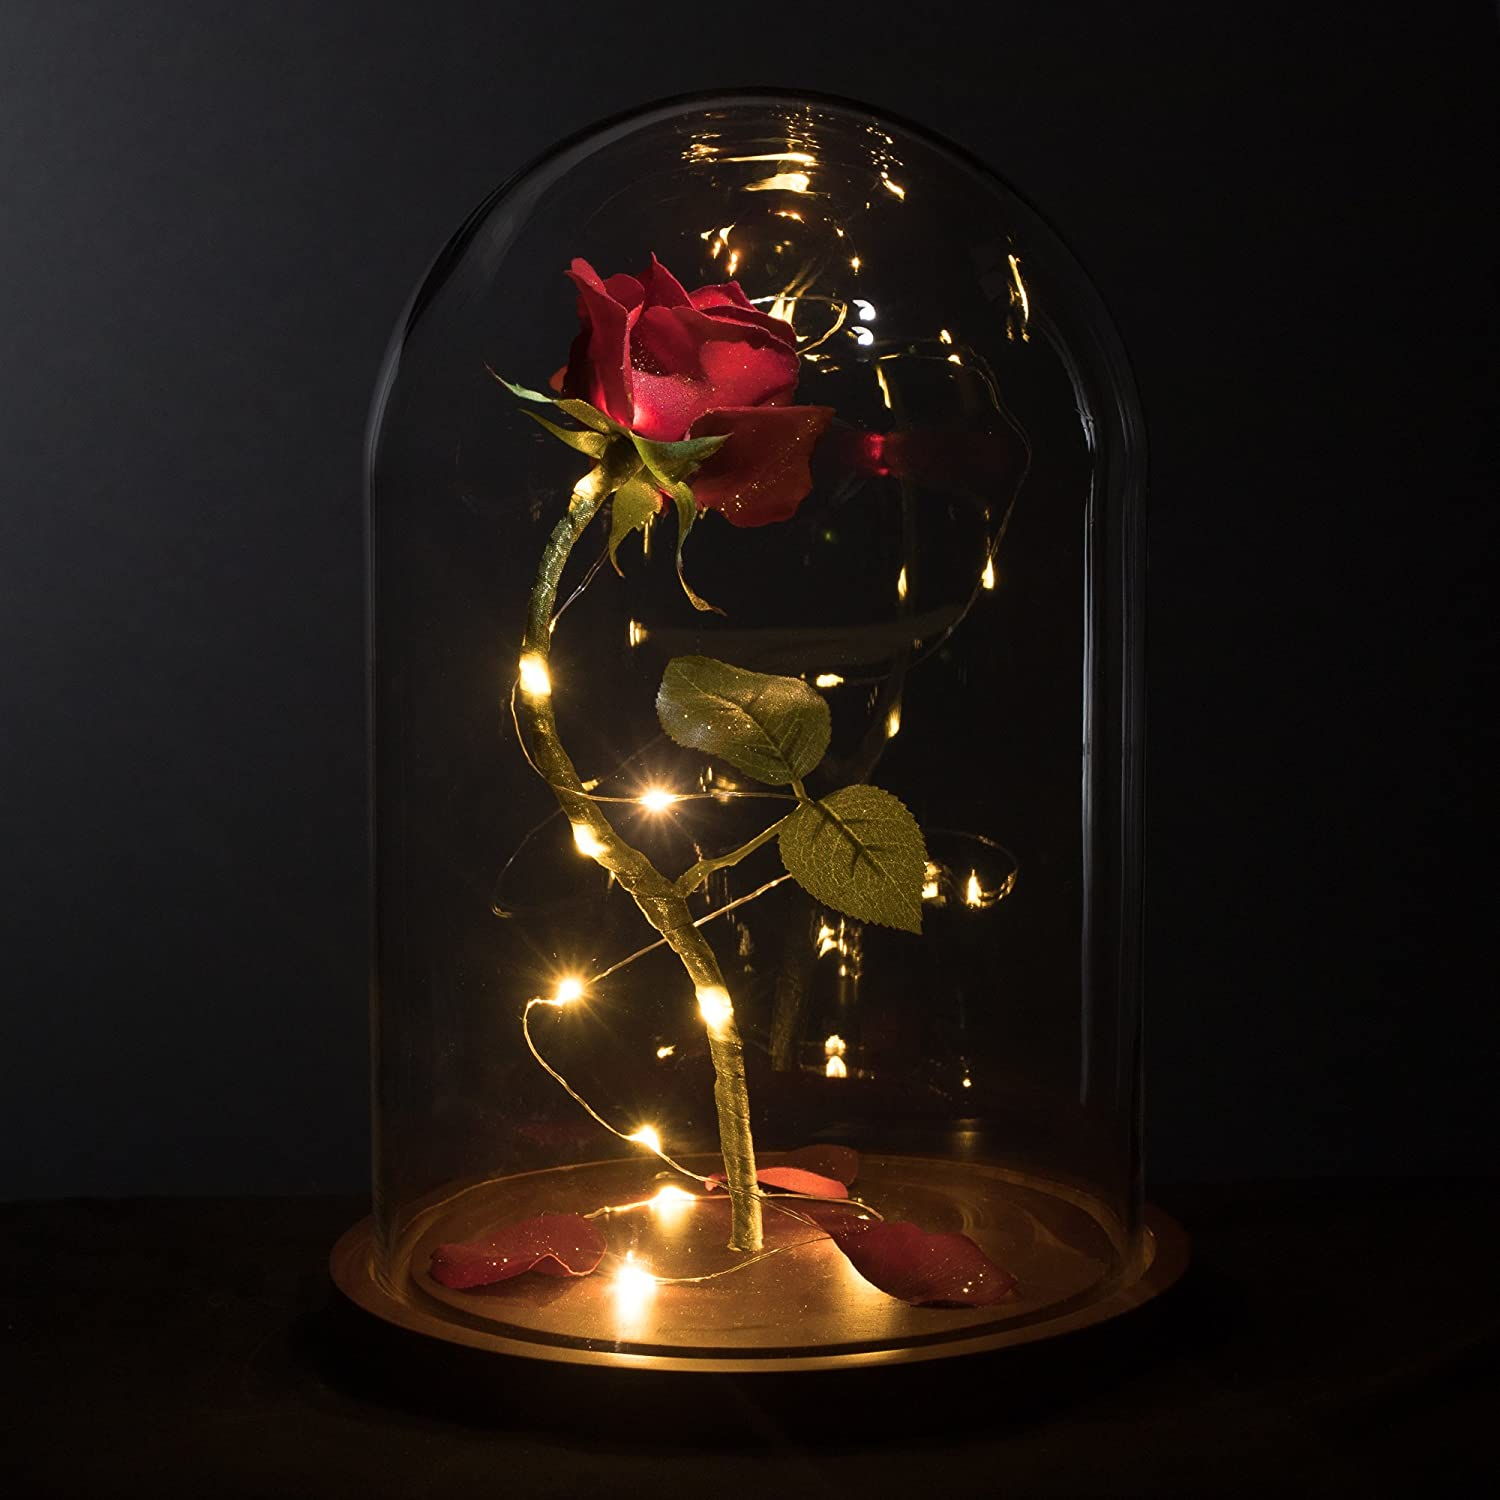 Amazon life sized 13 enchanted rose that lasts forever in amazon life sized 13 enchanted rose that lasts forever in glass dome inspired by disney beauty and the beast belle by magicprincesswhitney magic izmirmasajfo Choice Image